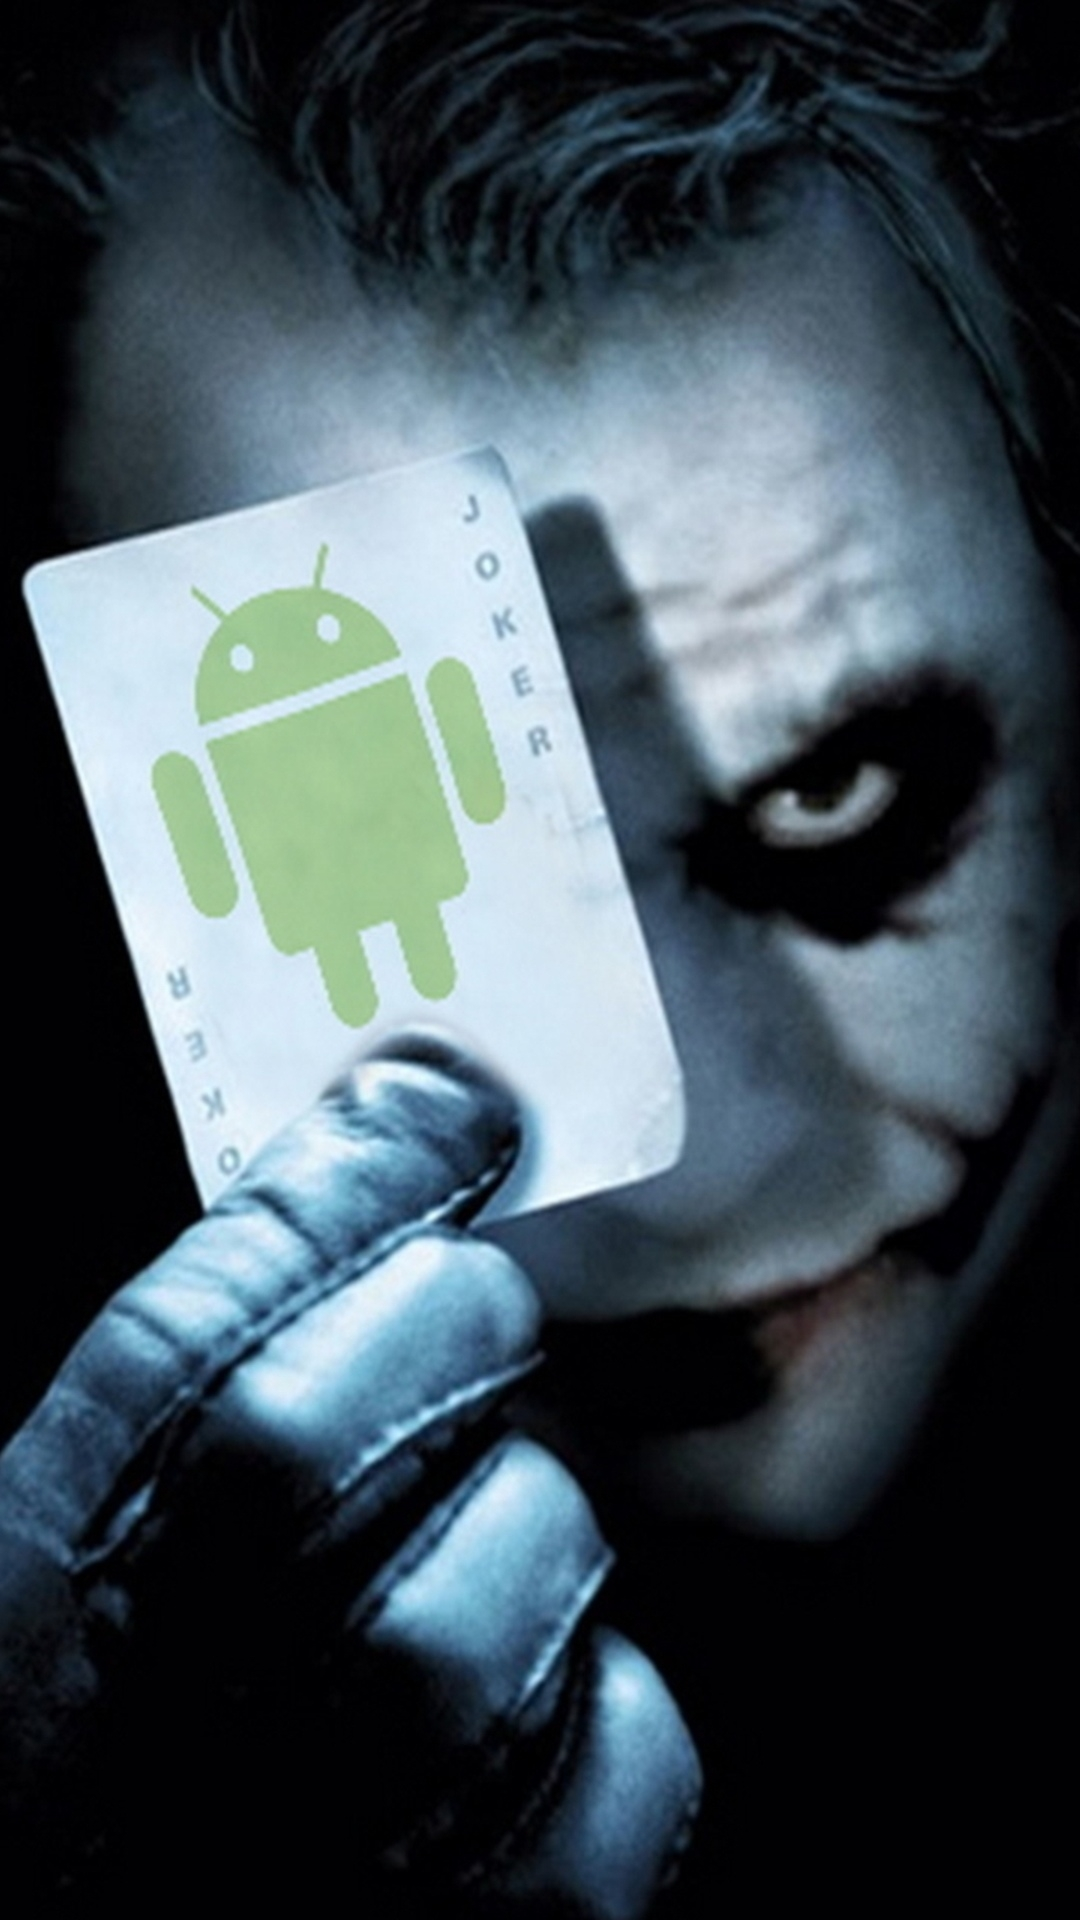 click here to download 1080x1920 pixel android joker face galaxy note hd wallpaper